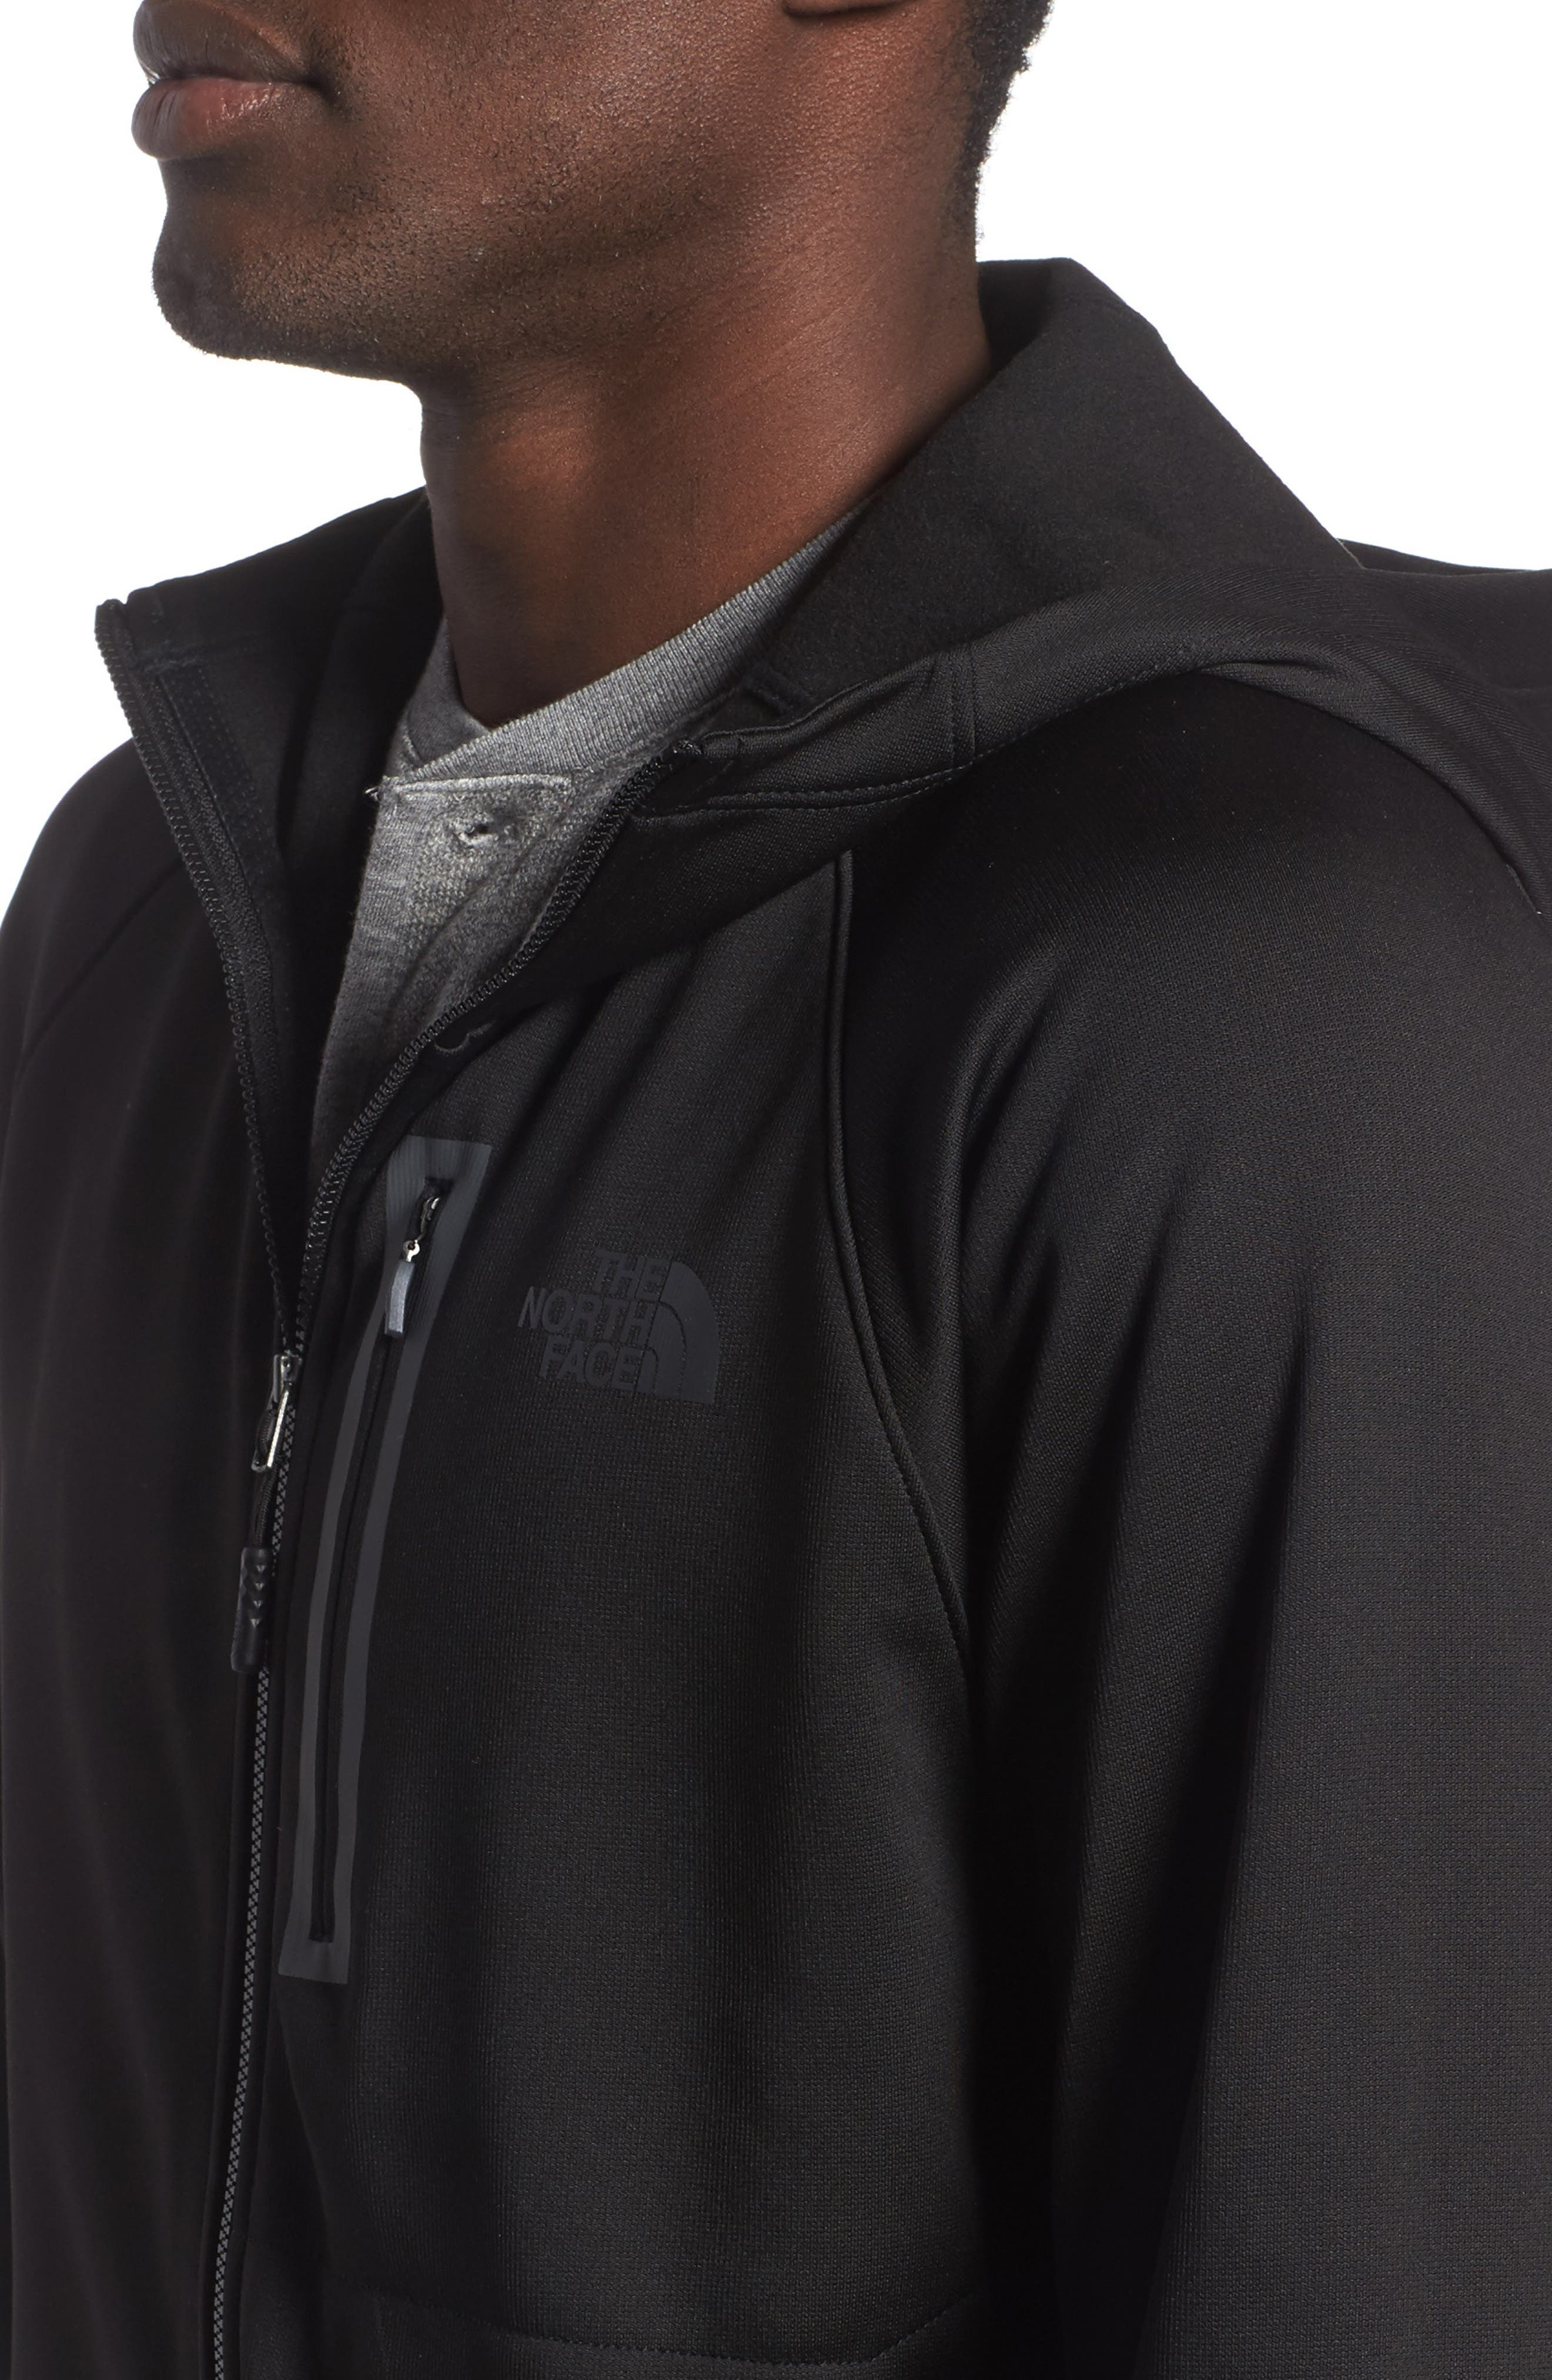 Canyonlands Full Zip Hoodie,                             Alternate thumbnail 11, color,